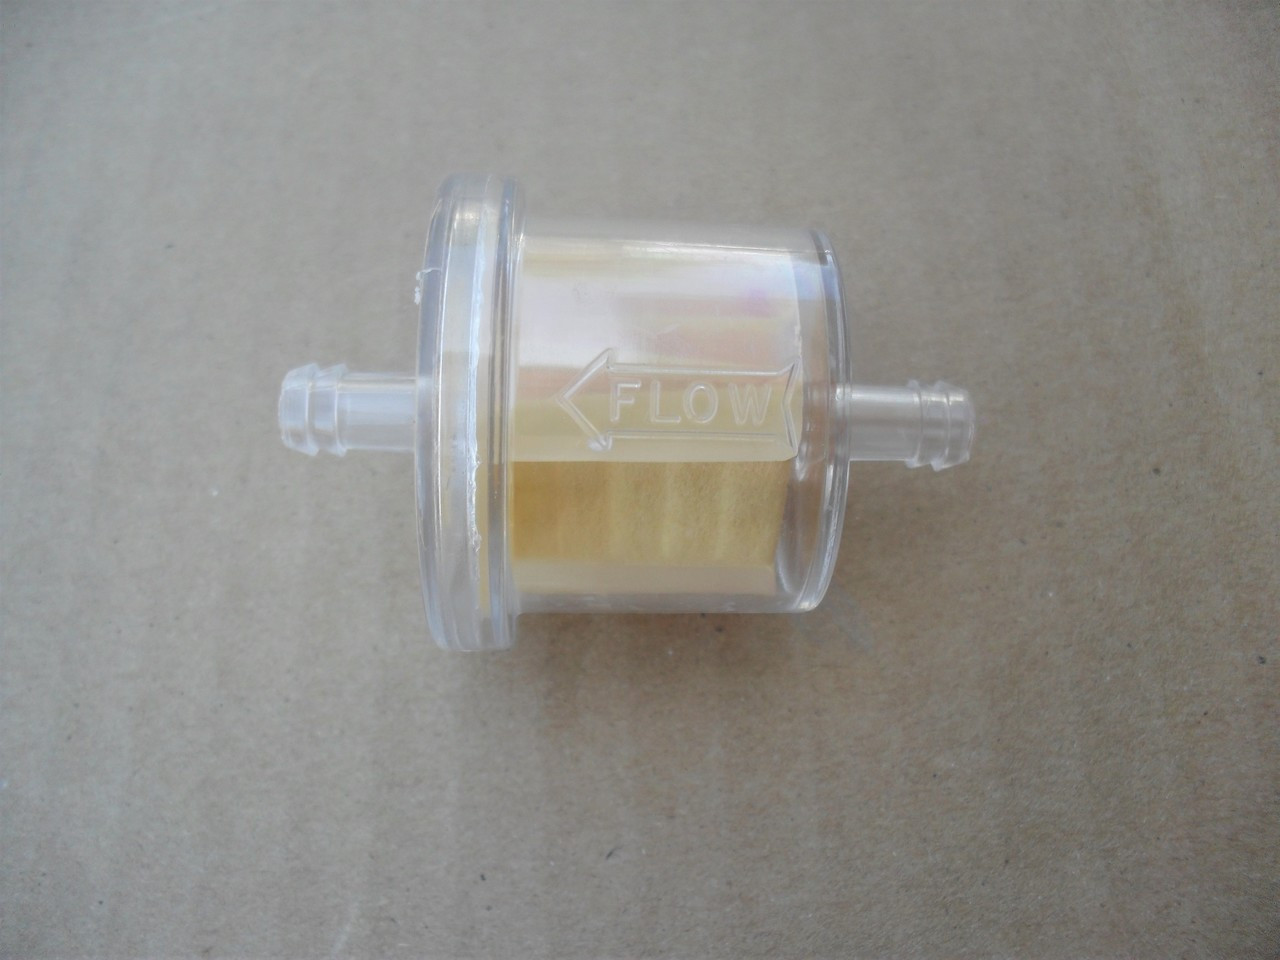 Clear Fuel Gas Filter for Tecumseh HM80, HM90, HM100, OHV125, OVM120,  OVXL120, TVM195, TVM220, TVXL220, 34279A, 34279B, 34729, 740003Bwww.lawnmowerpartstore.com